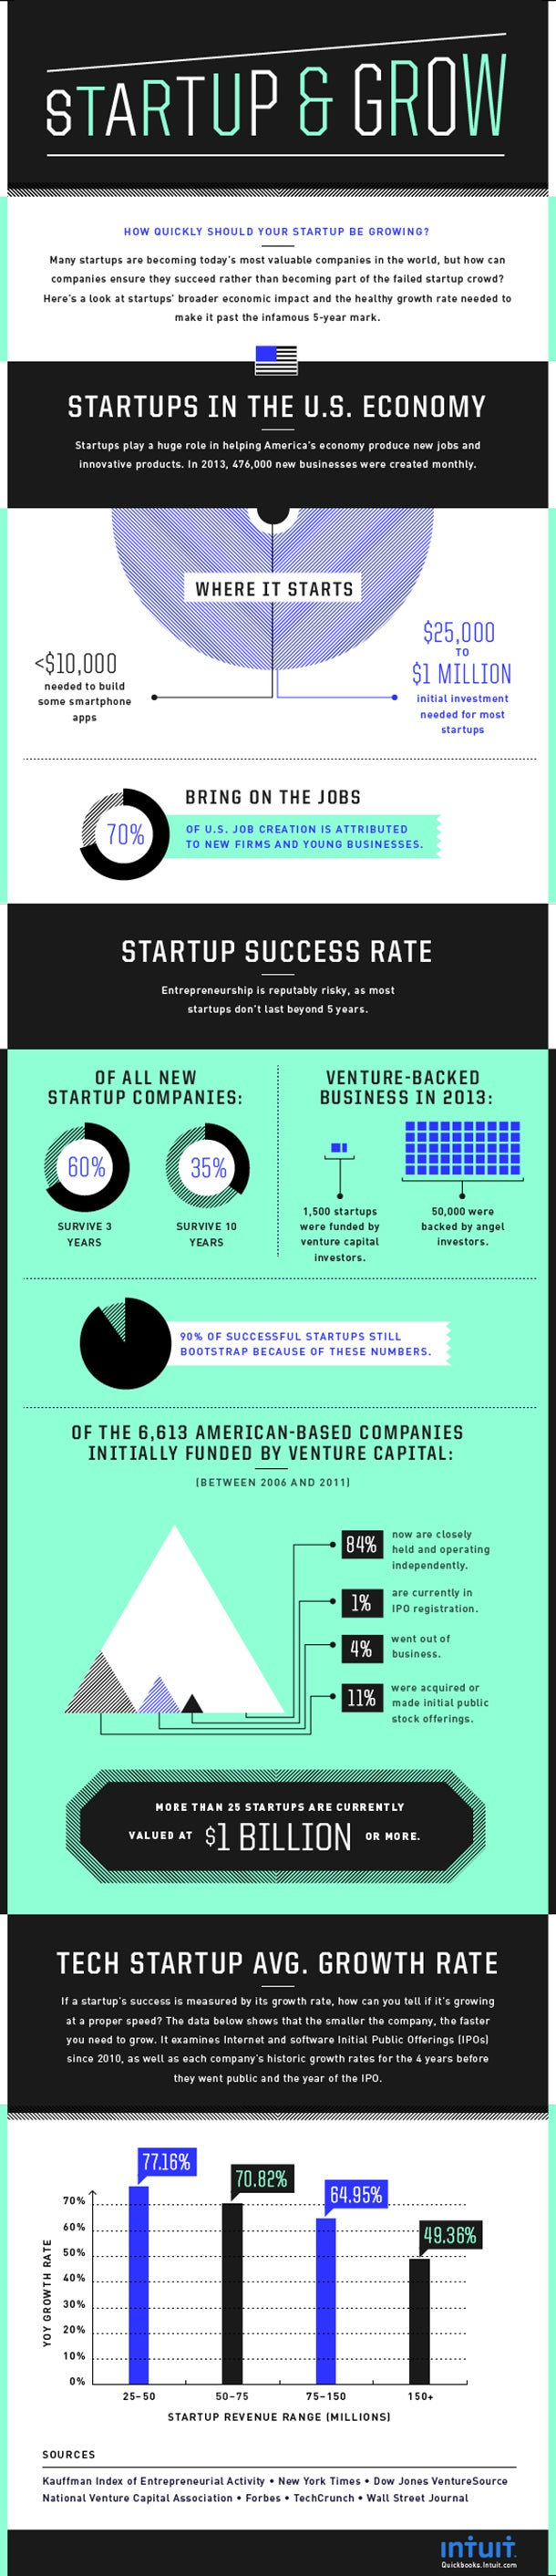 Entrepreneurship Is a High-Stakes Game. Know Your Odds Going In. (Infographic)